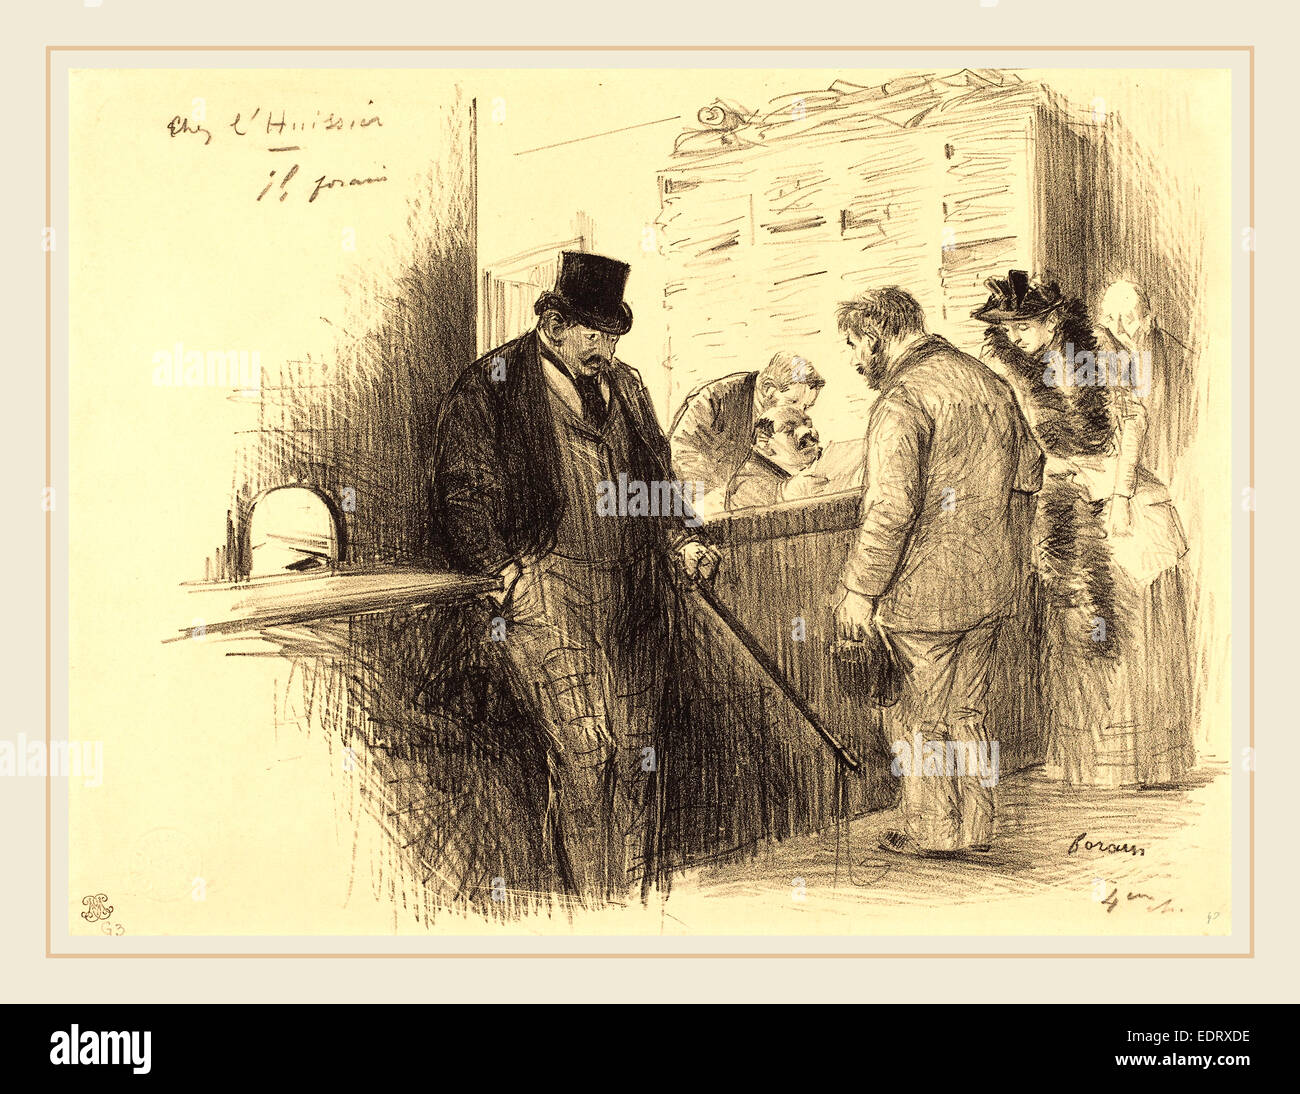 Jean-Louis Forain (French, 1852-1931), At the Bailiff's, c. 1891, lithograph - Stock Image